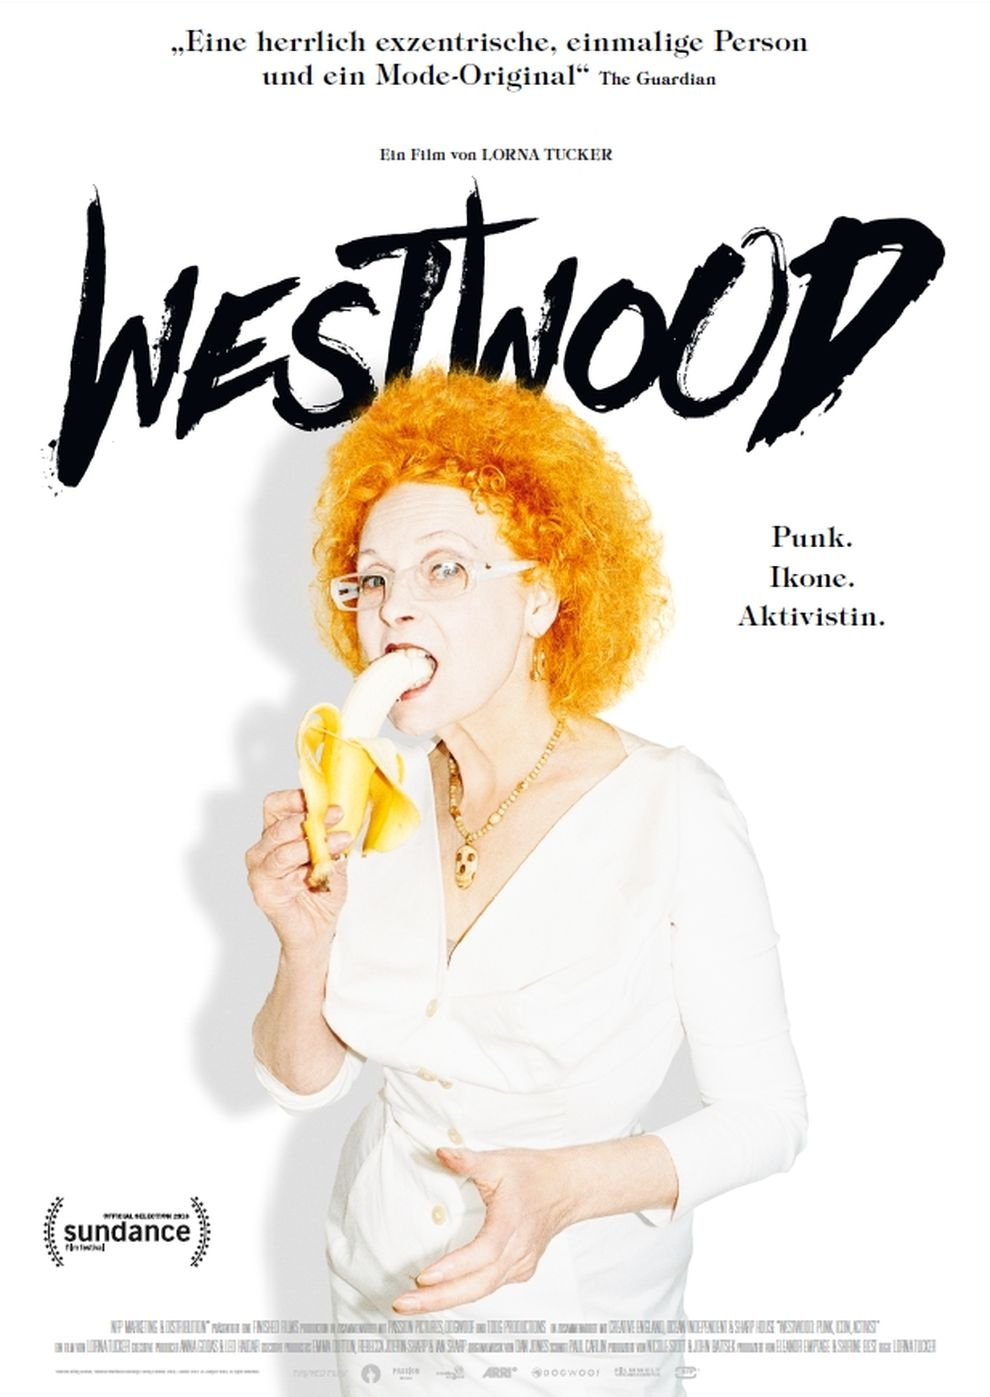 Westwood (Poster)